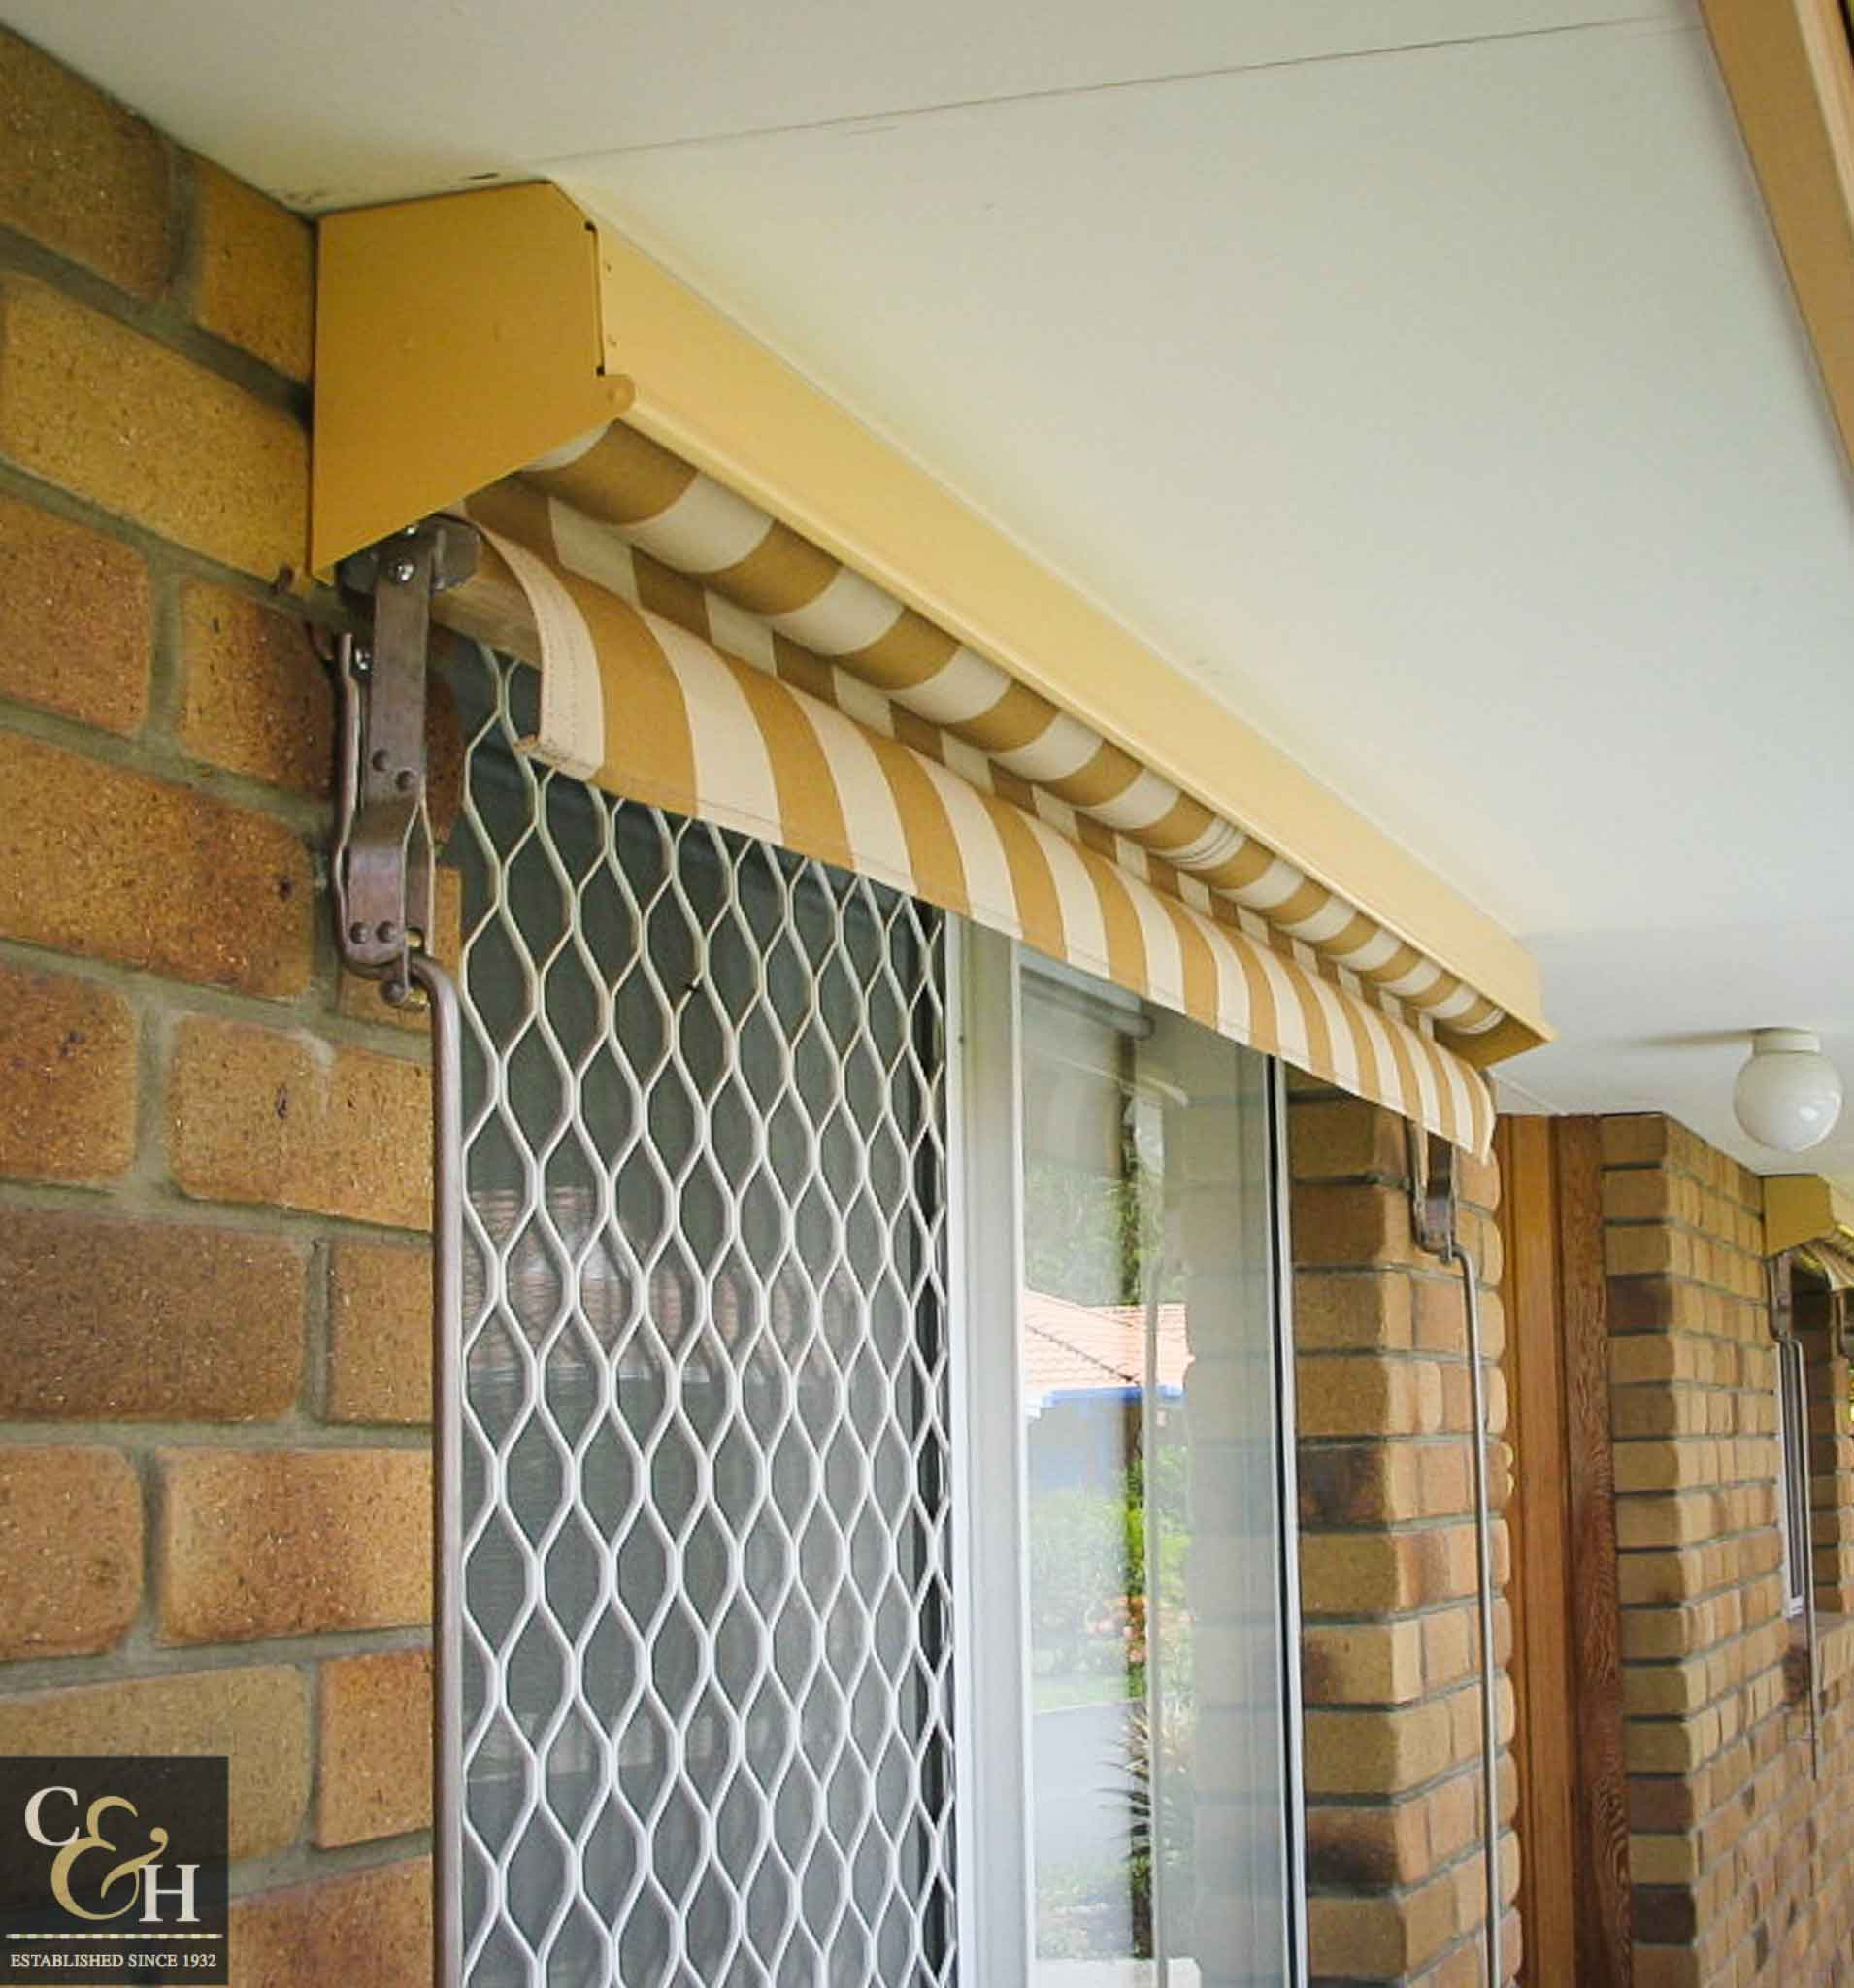 Outdoor Sun Blinds Sunblinds Outdoor Blinds 3 Campbell And Heeps